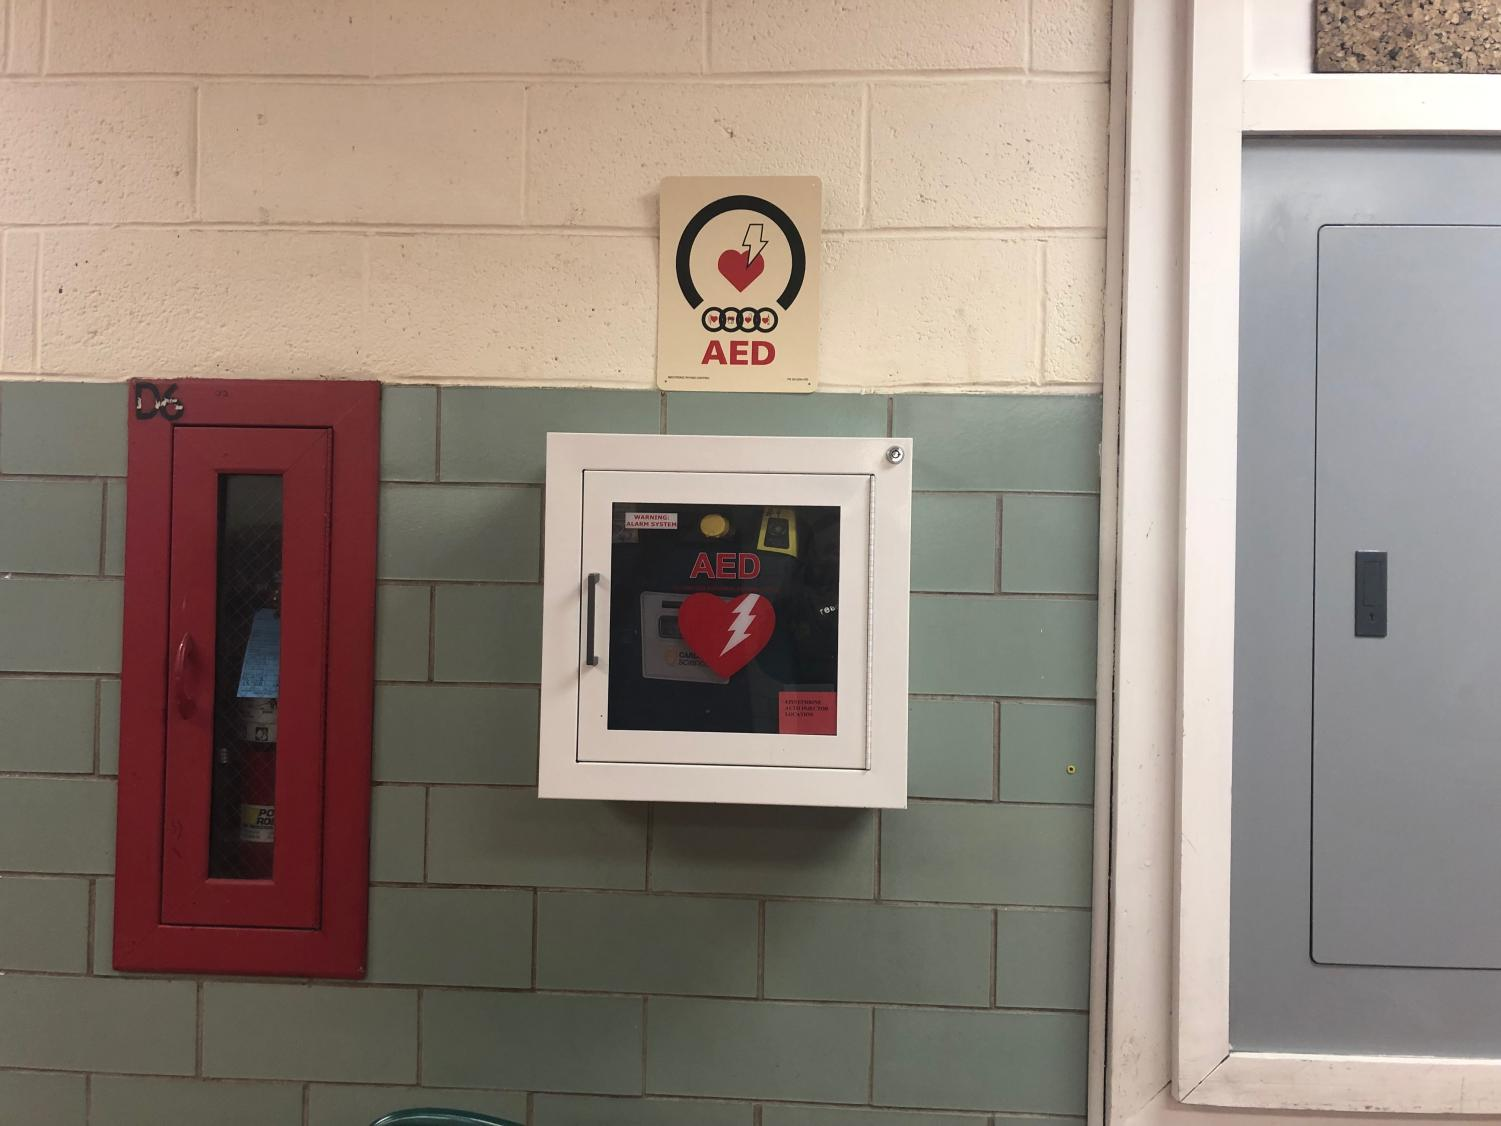 The AED helps students and teachers who are having medical issues. This AED was loaded with materials needed for emergencies, such as drug overdoses, heart attacks, seizures, and allergic reactions.